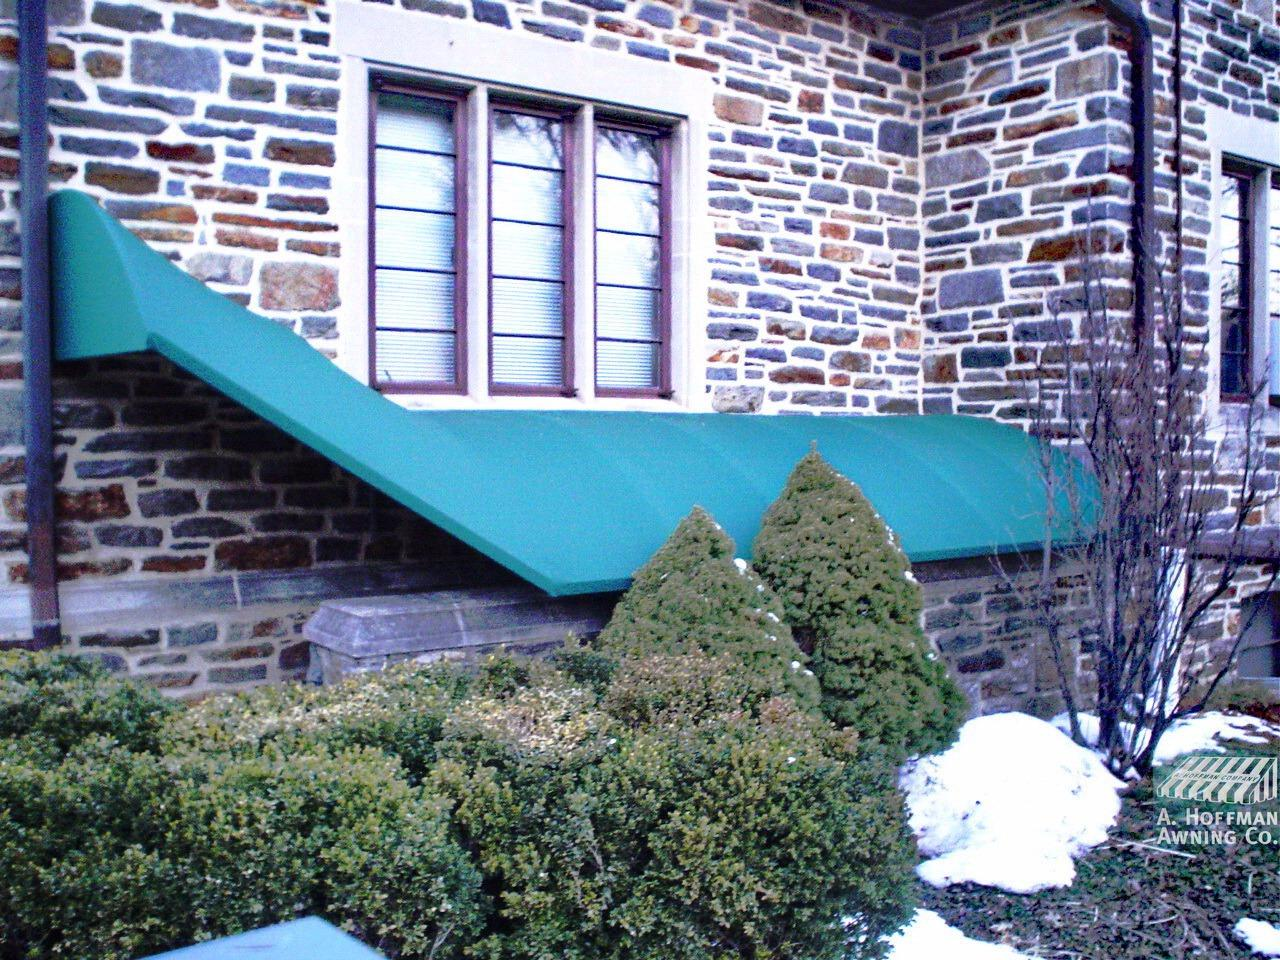 A. Hoffman Awning in Baltimore     410-685-5687     Wonderful basement or stairwell awning offering protection from fallen leaves, snow, and rain.